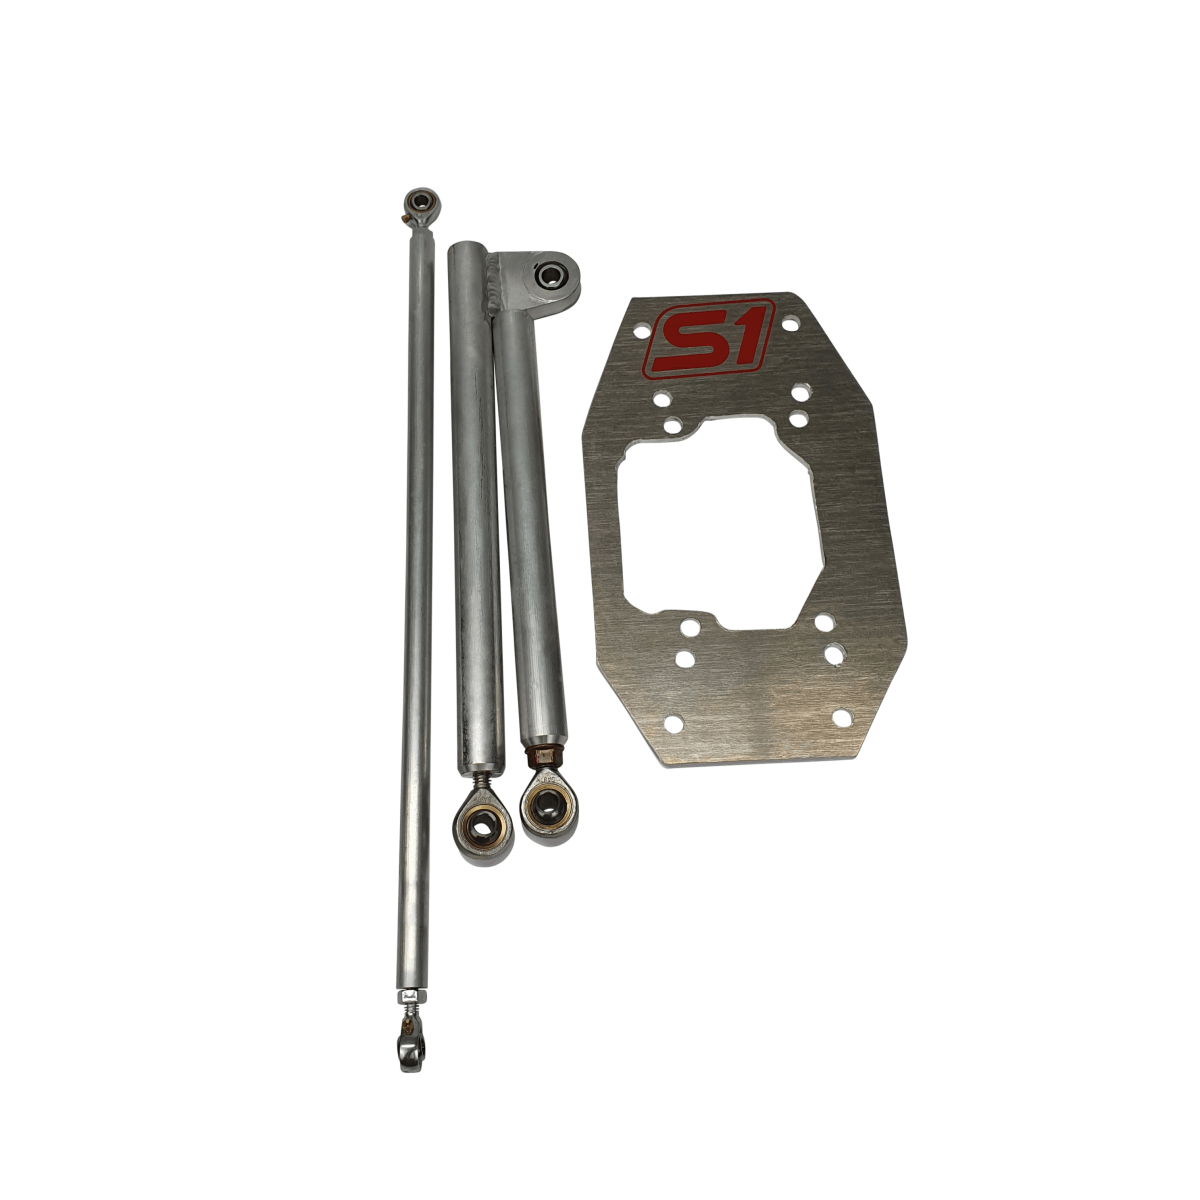 Sequential remote mount fitting kit - S1 Sequential